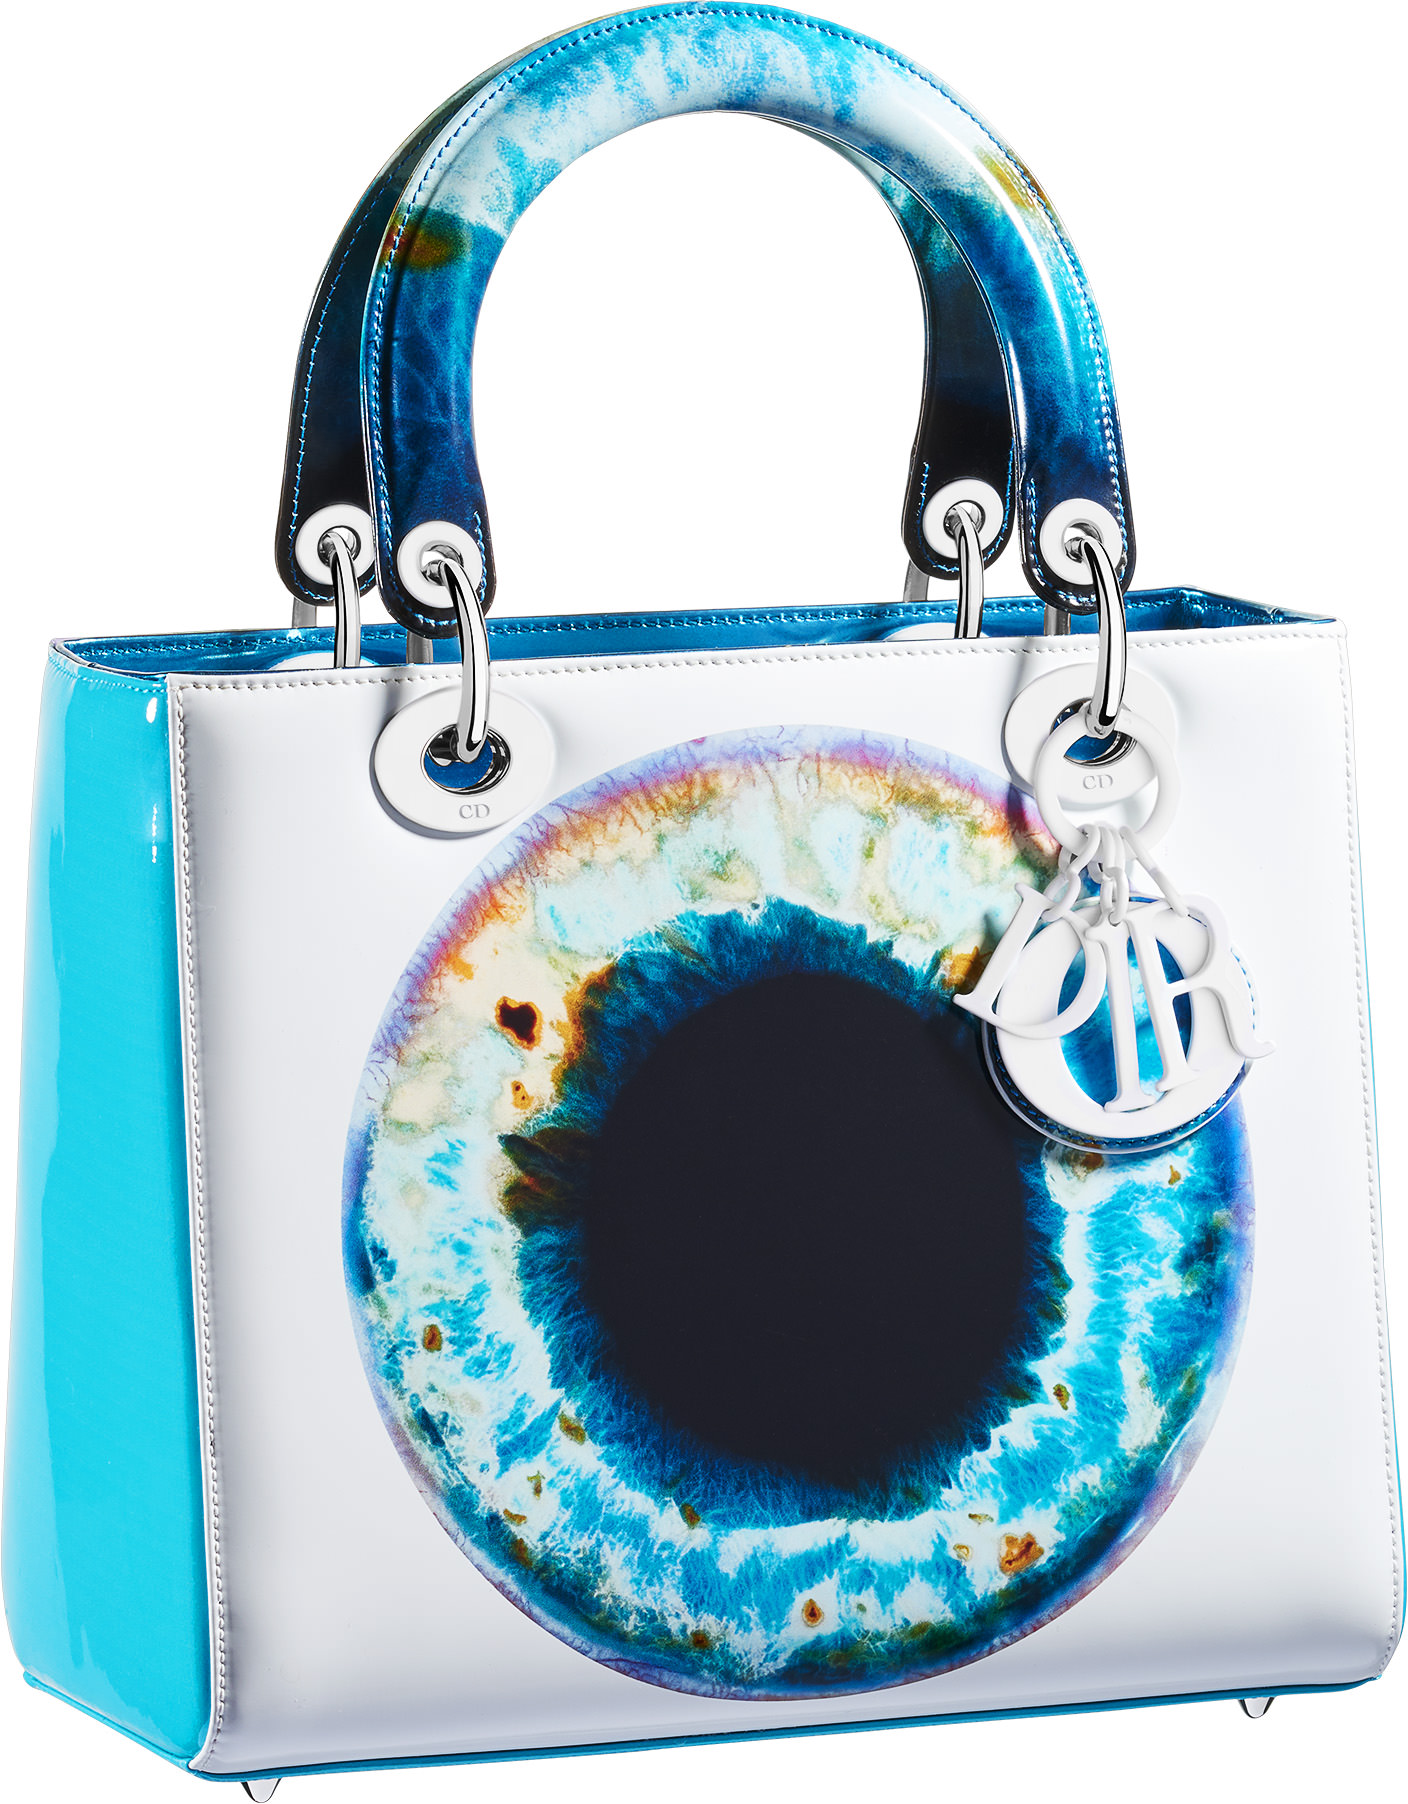 4d1dd1ecb5 Dior presents a collaboration with the artist Marc Quinn in limited edition